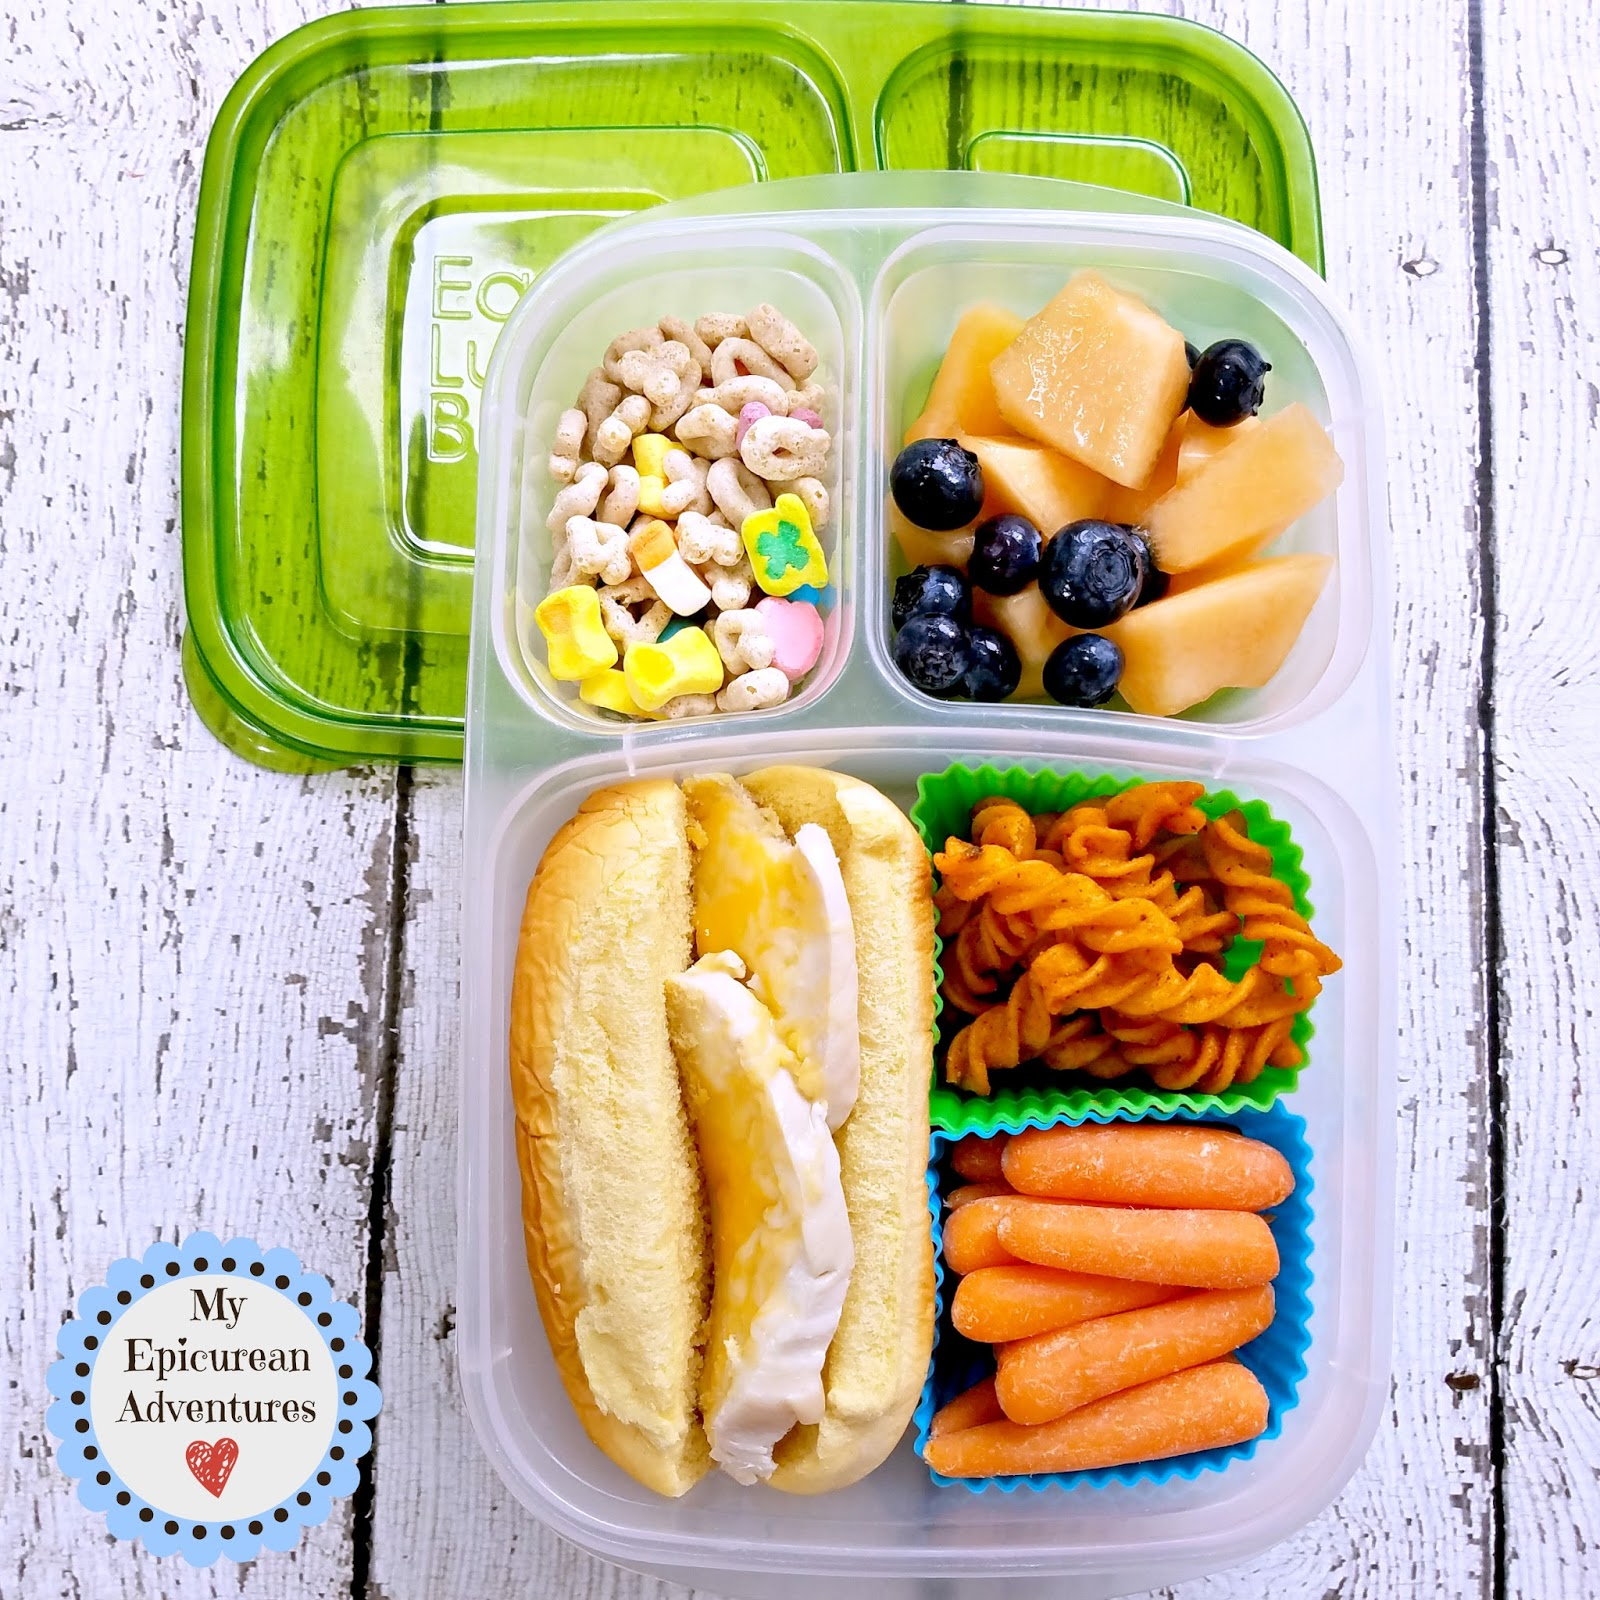 My epicurean adventures lunch box fun 2015 16 weeks 29 51 lunch box fun with a grilled chicken breast mini sub sandwich on a potato hot forumfinder Images